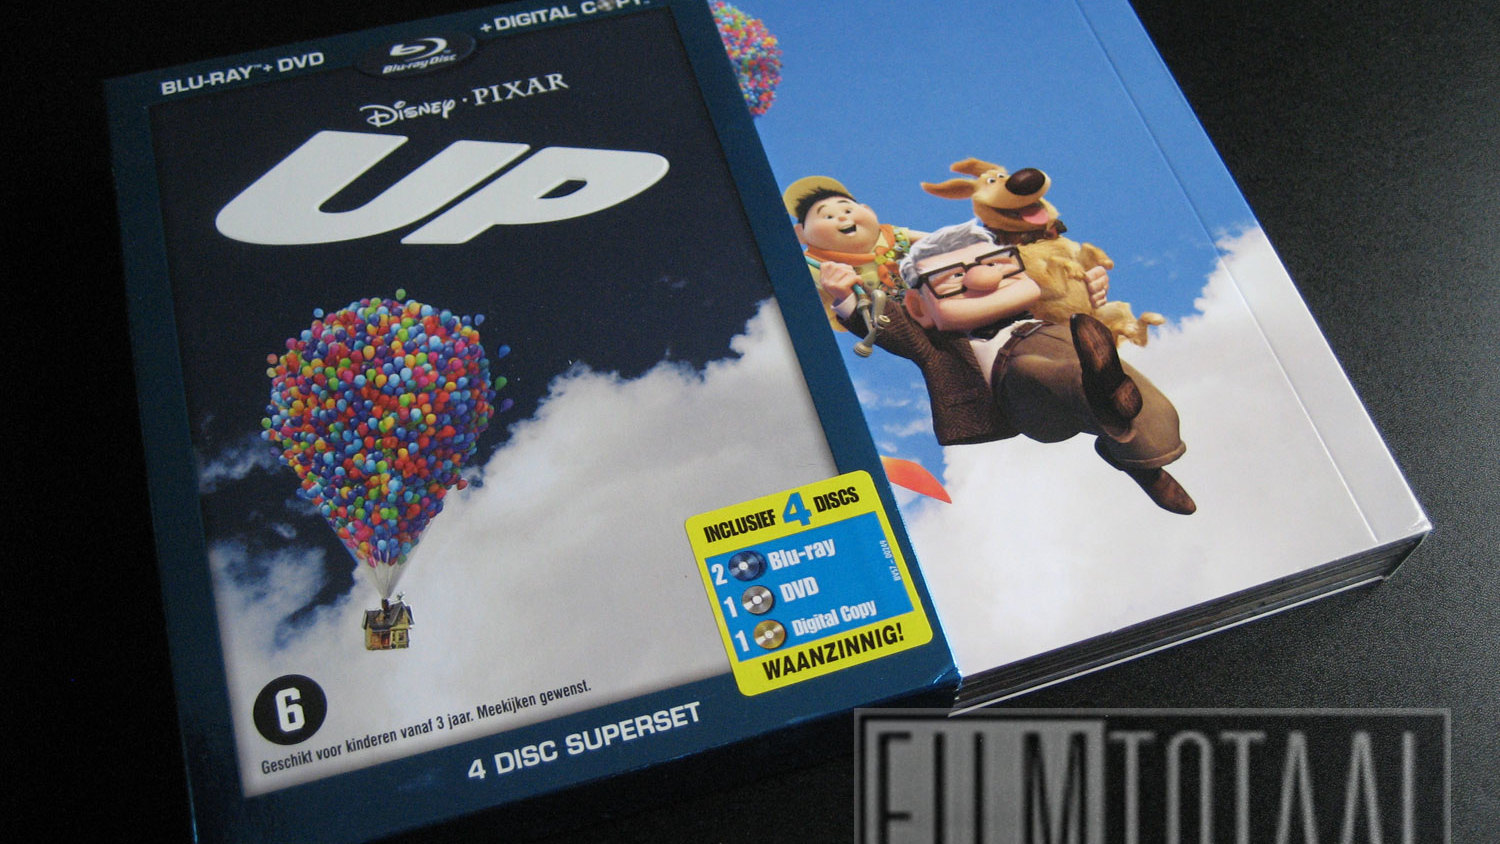 Blu-Ray Review: Up (4 disc Superset)